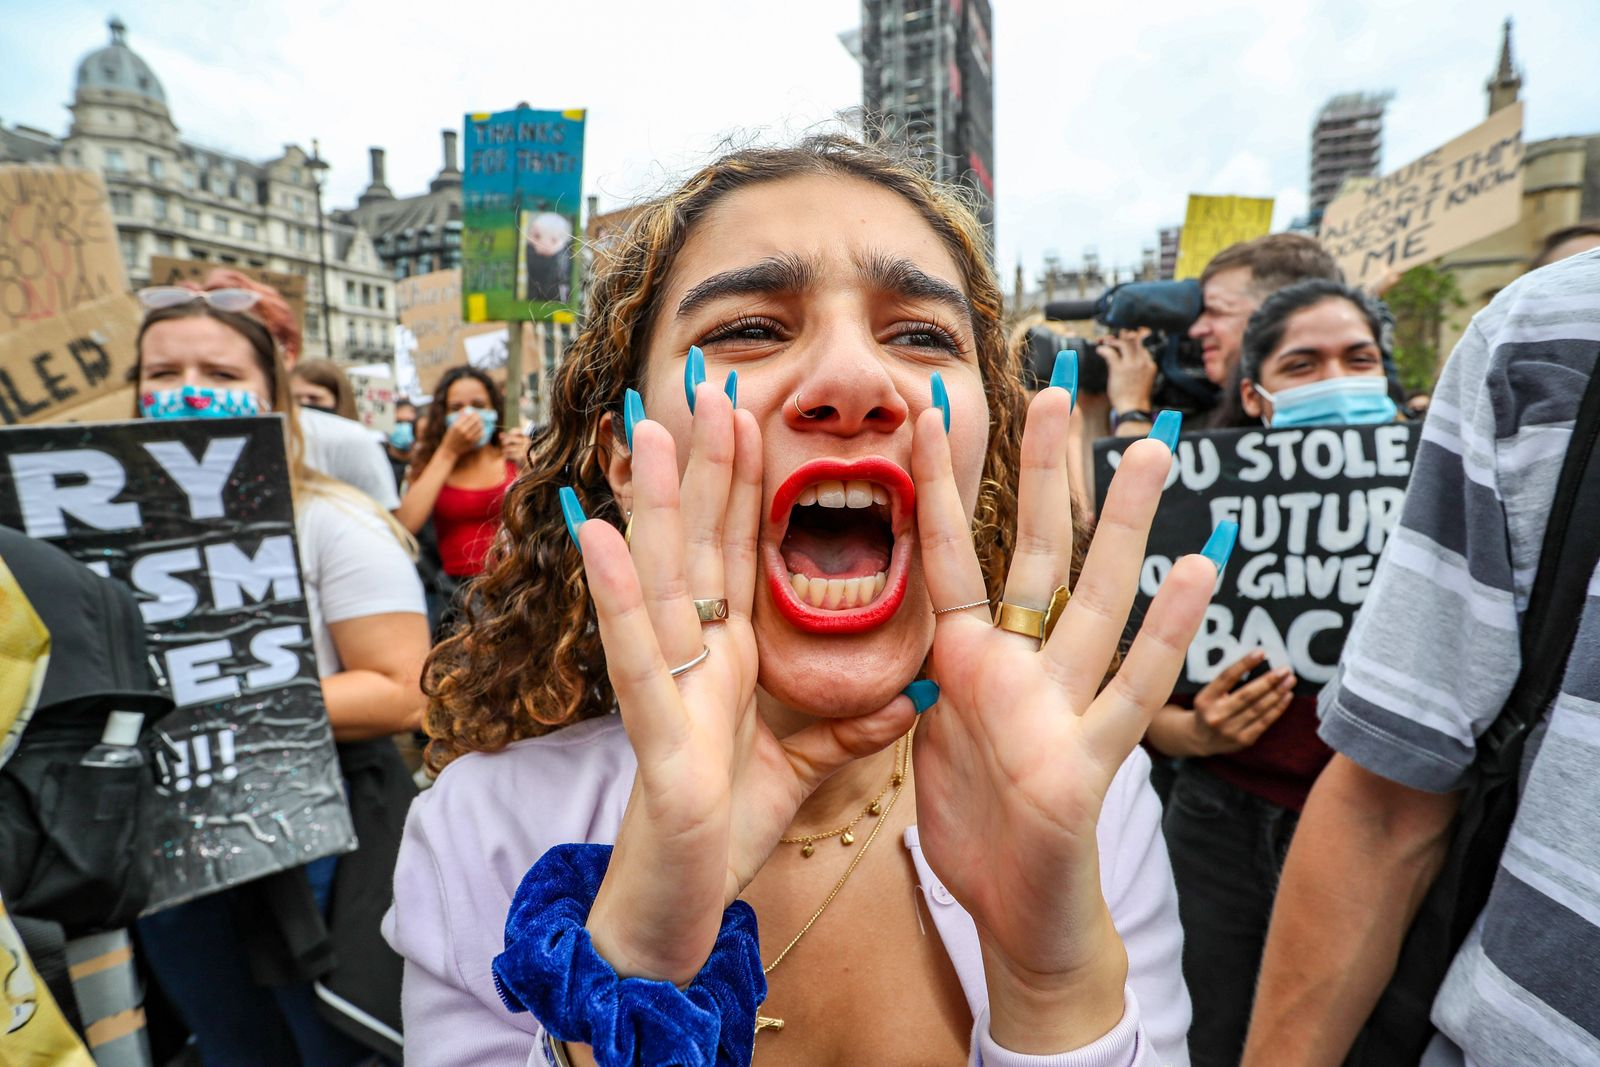 People take part in a peaceful protest in Parliament Square, in Central London on Sunday, Aug 16, 2020 - in response to